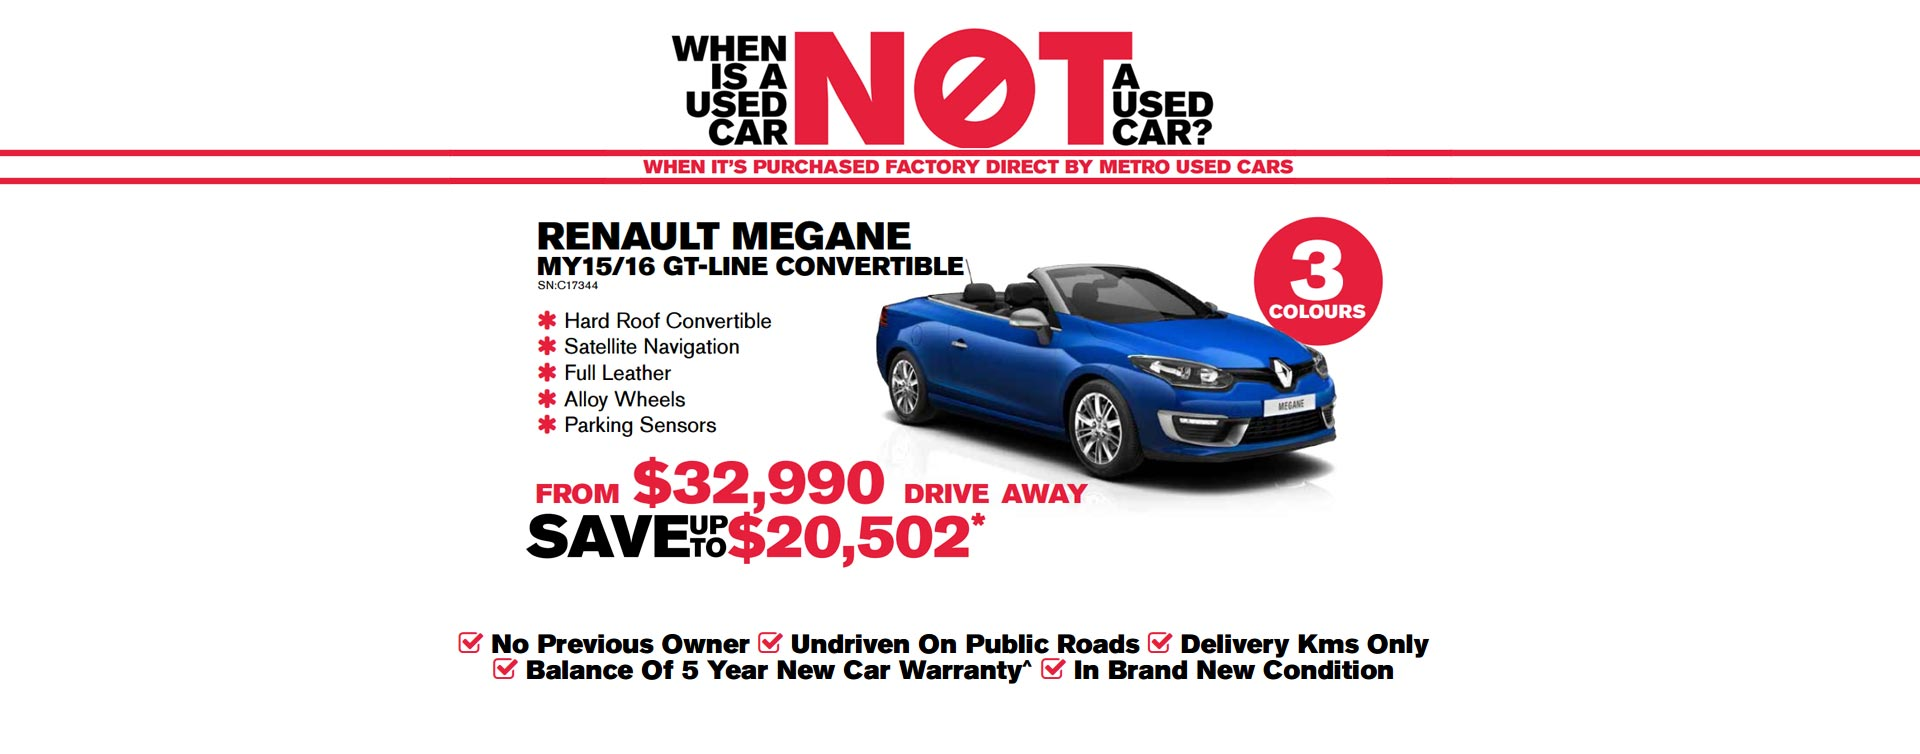 renault Megane MY15/16 GT-Line Convertible from $32,990 drive away, save up to $20,502.